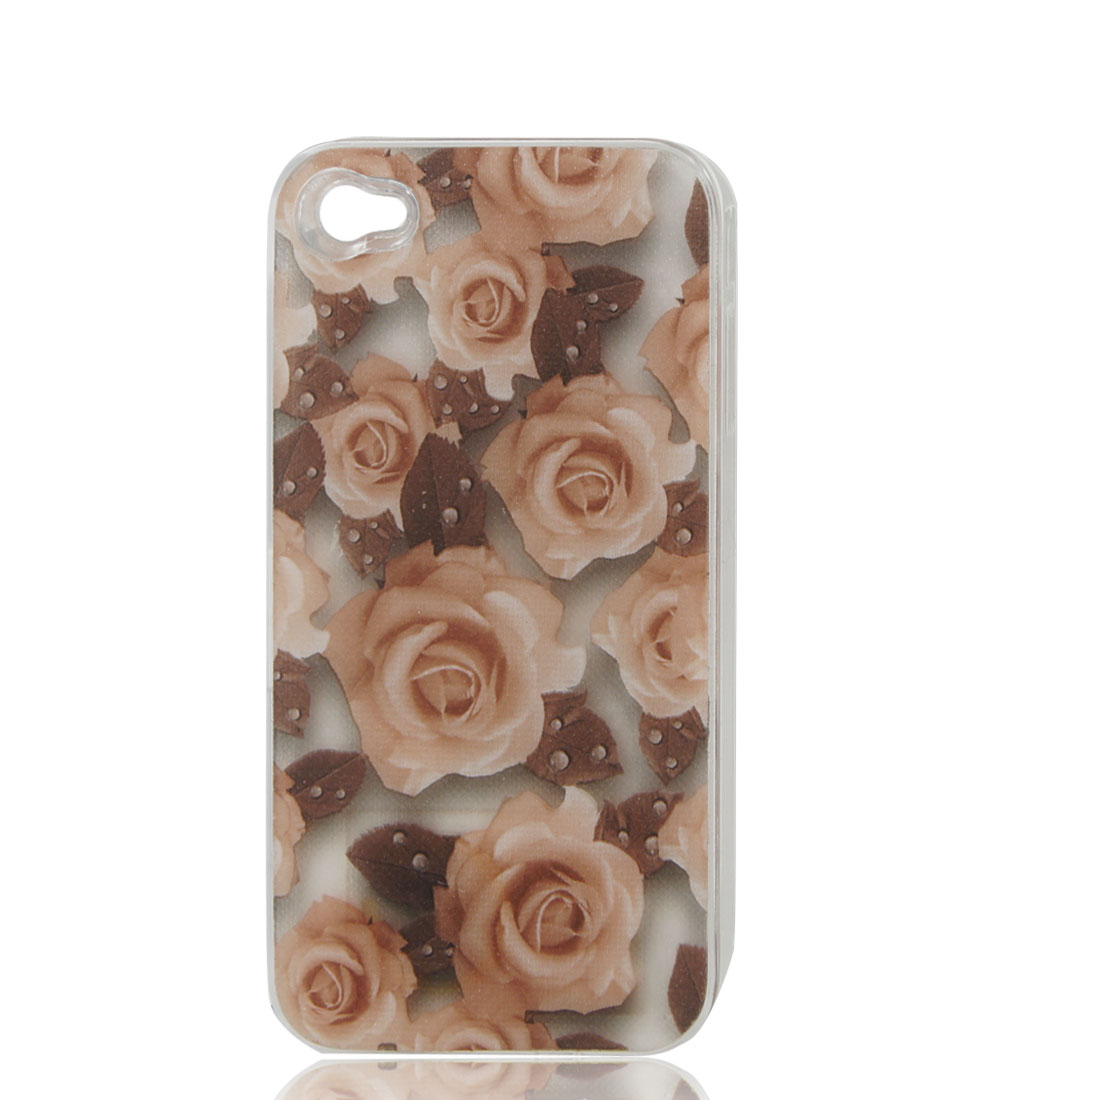 Rose Flower Print Sense Flash Light LED Color Changed Hard Back Case Cover for iPhone 4 4S